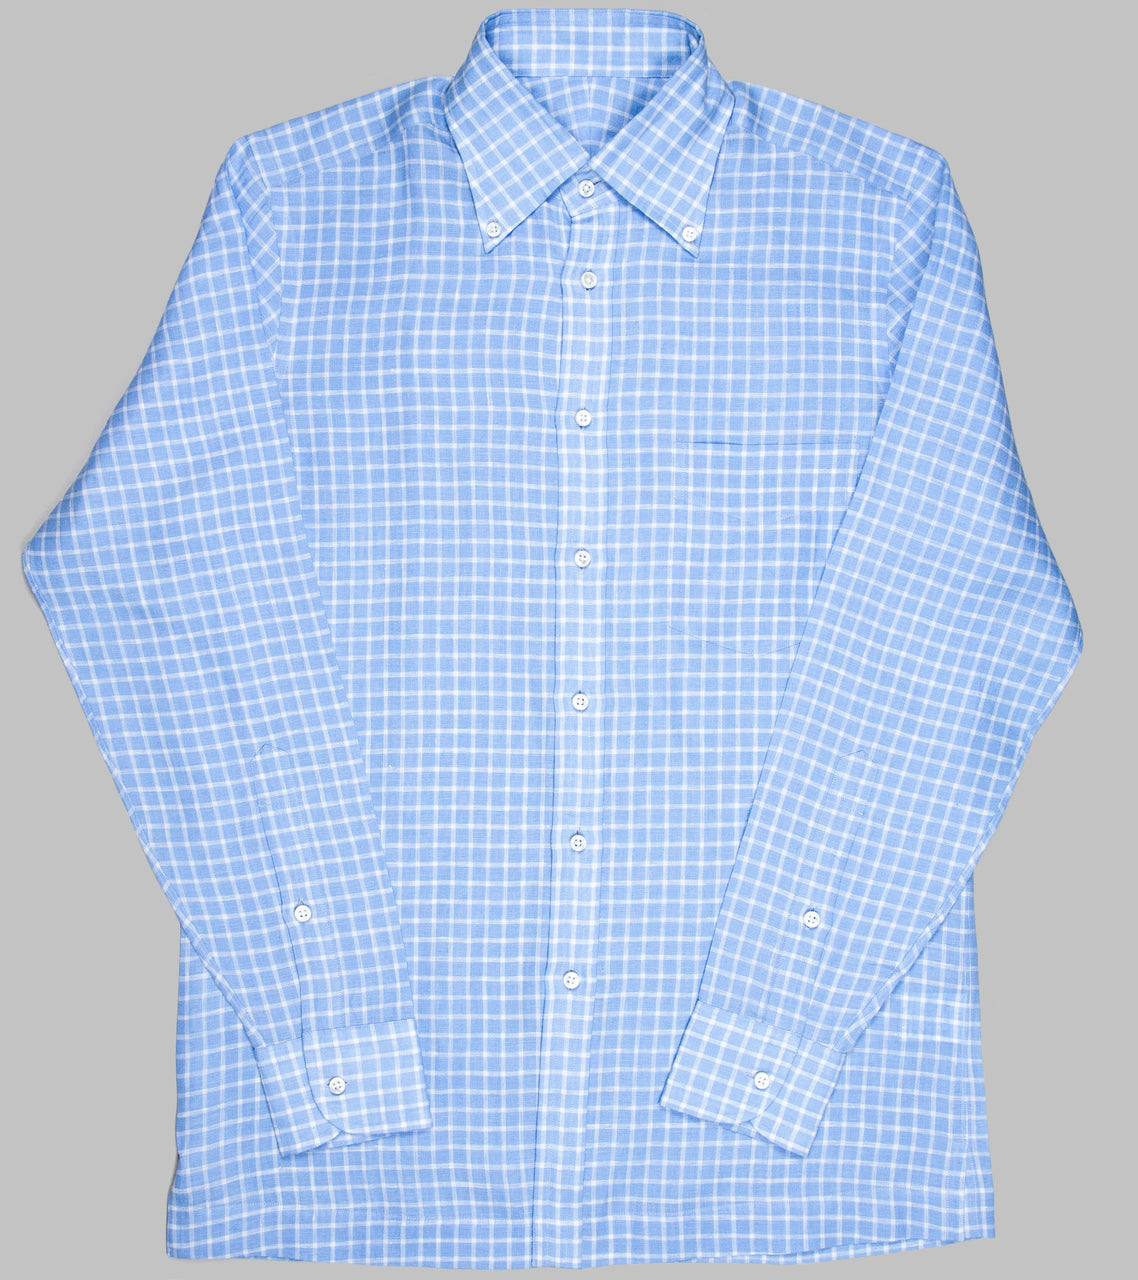 Bryceland's Linen Button Down Checked Shirt Blue